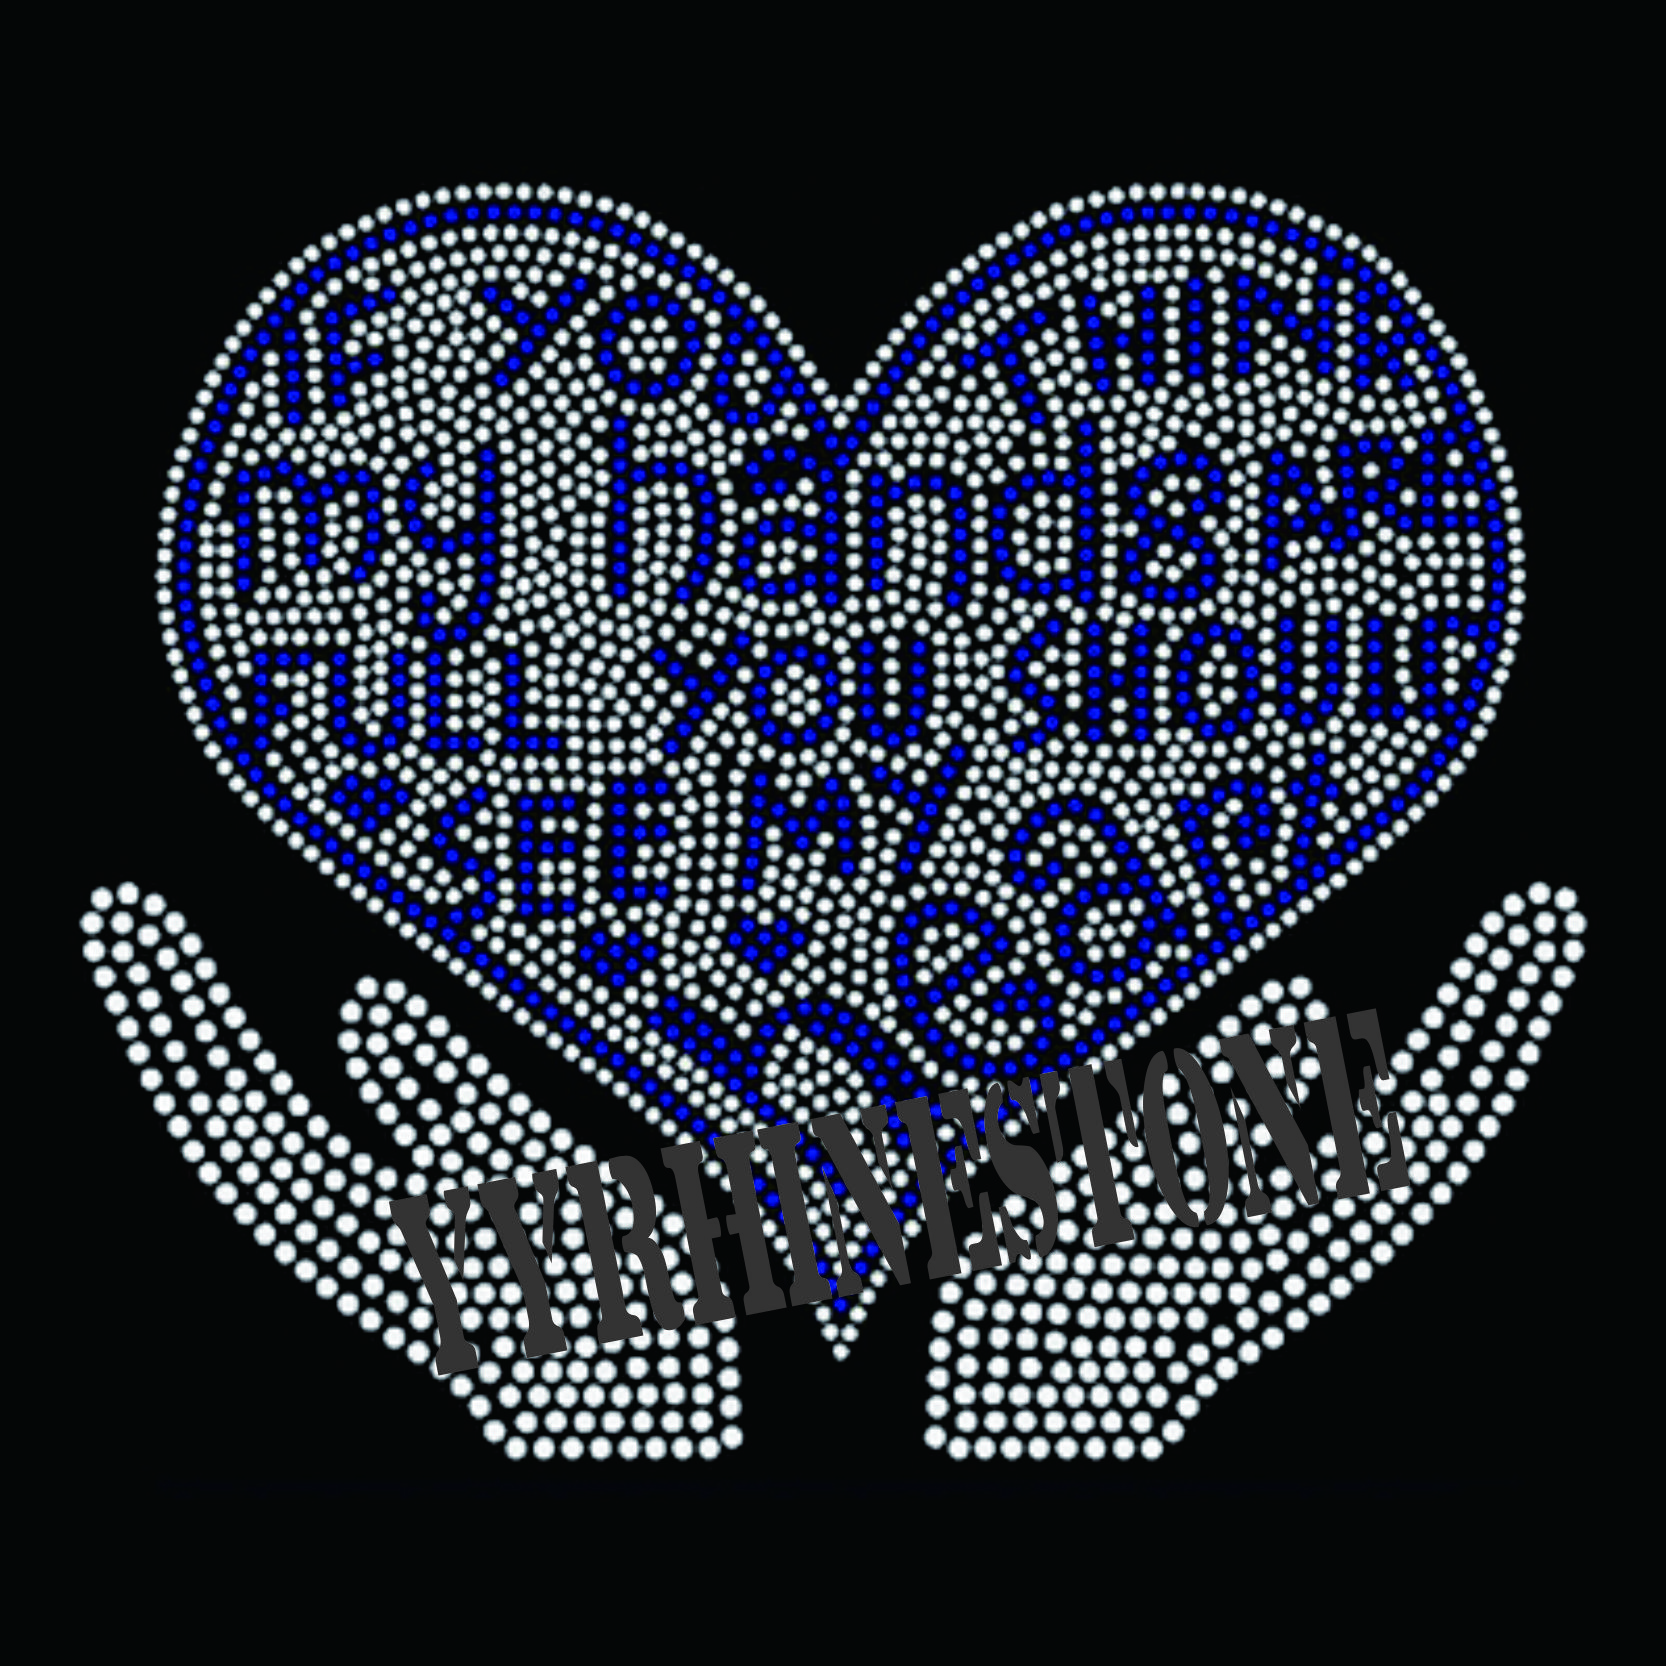 You should see my heart rhinestone transfer